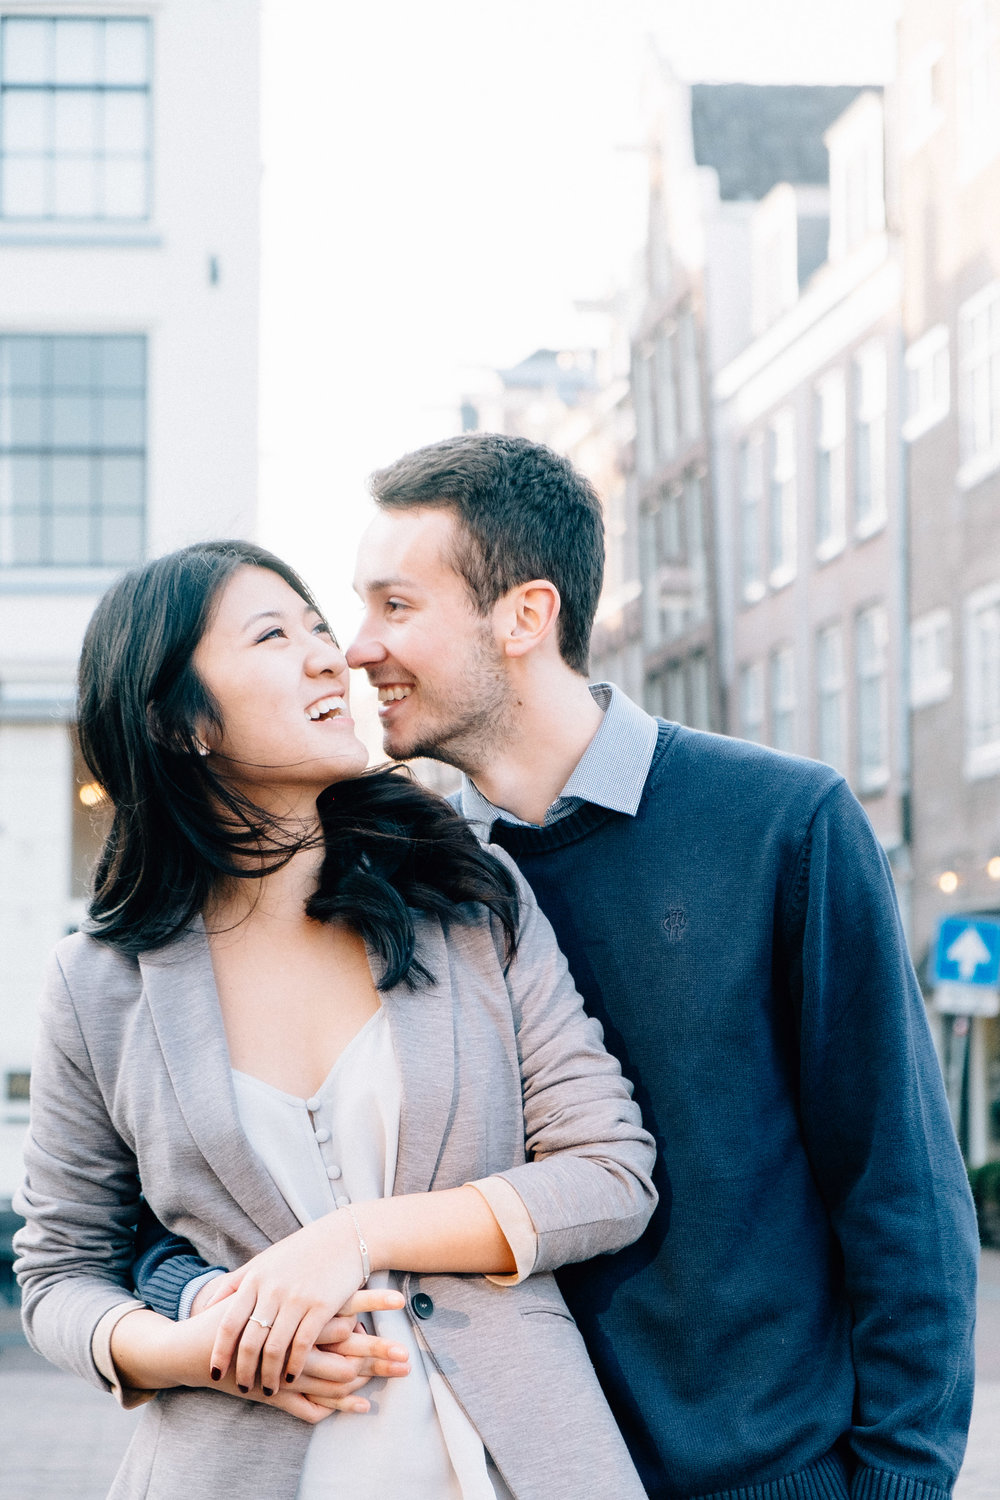 Thao & Janik in Amsterdam (17 of 51) - Jan Arsenovic Photography.jpg